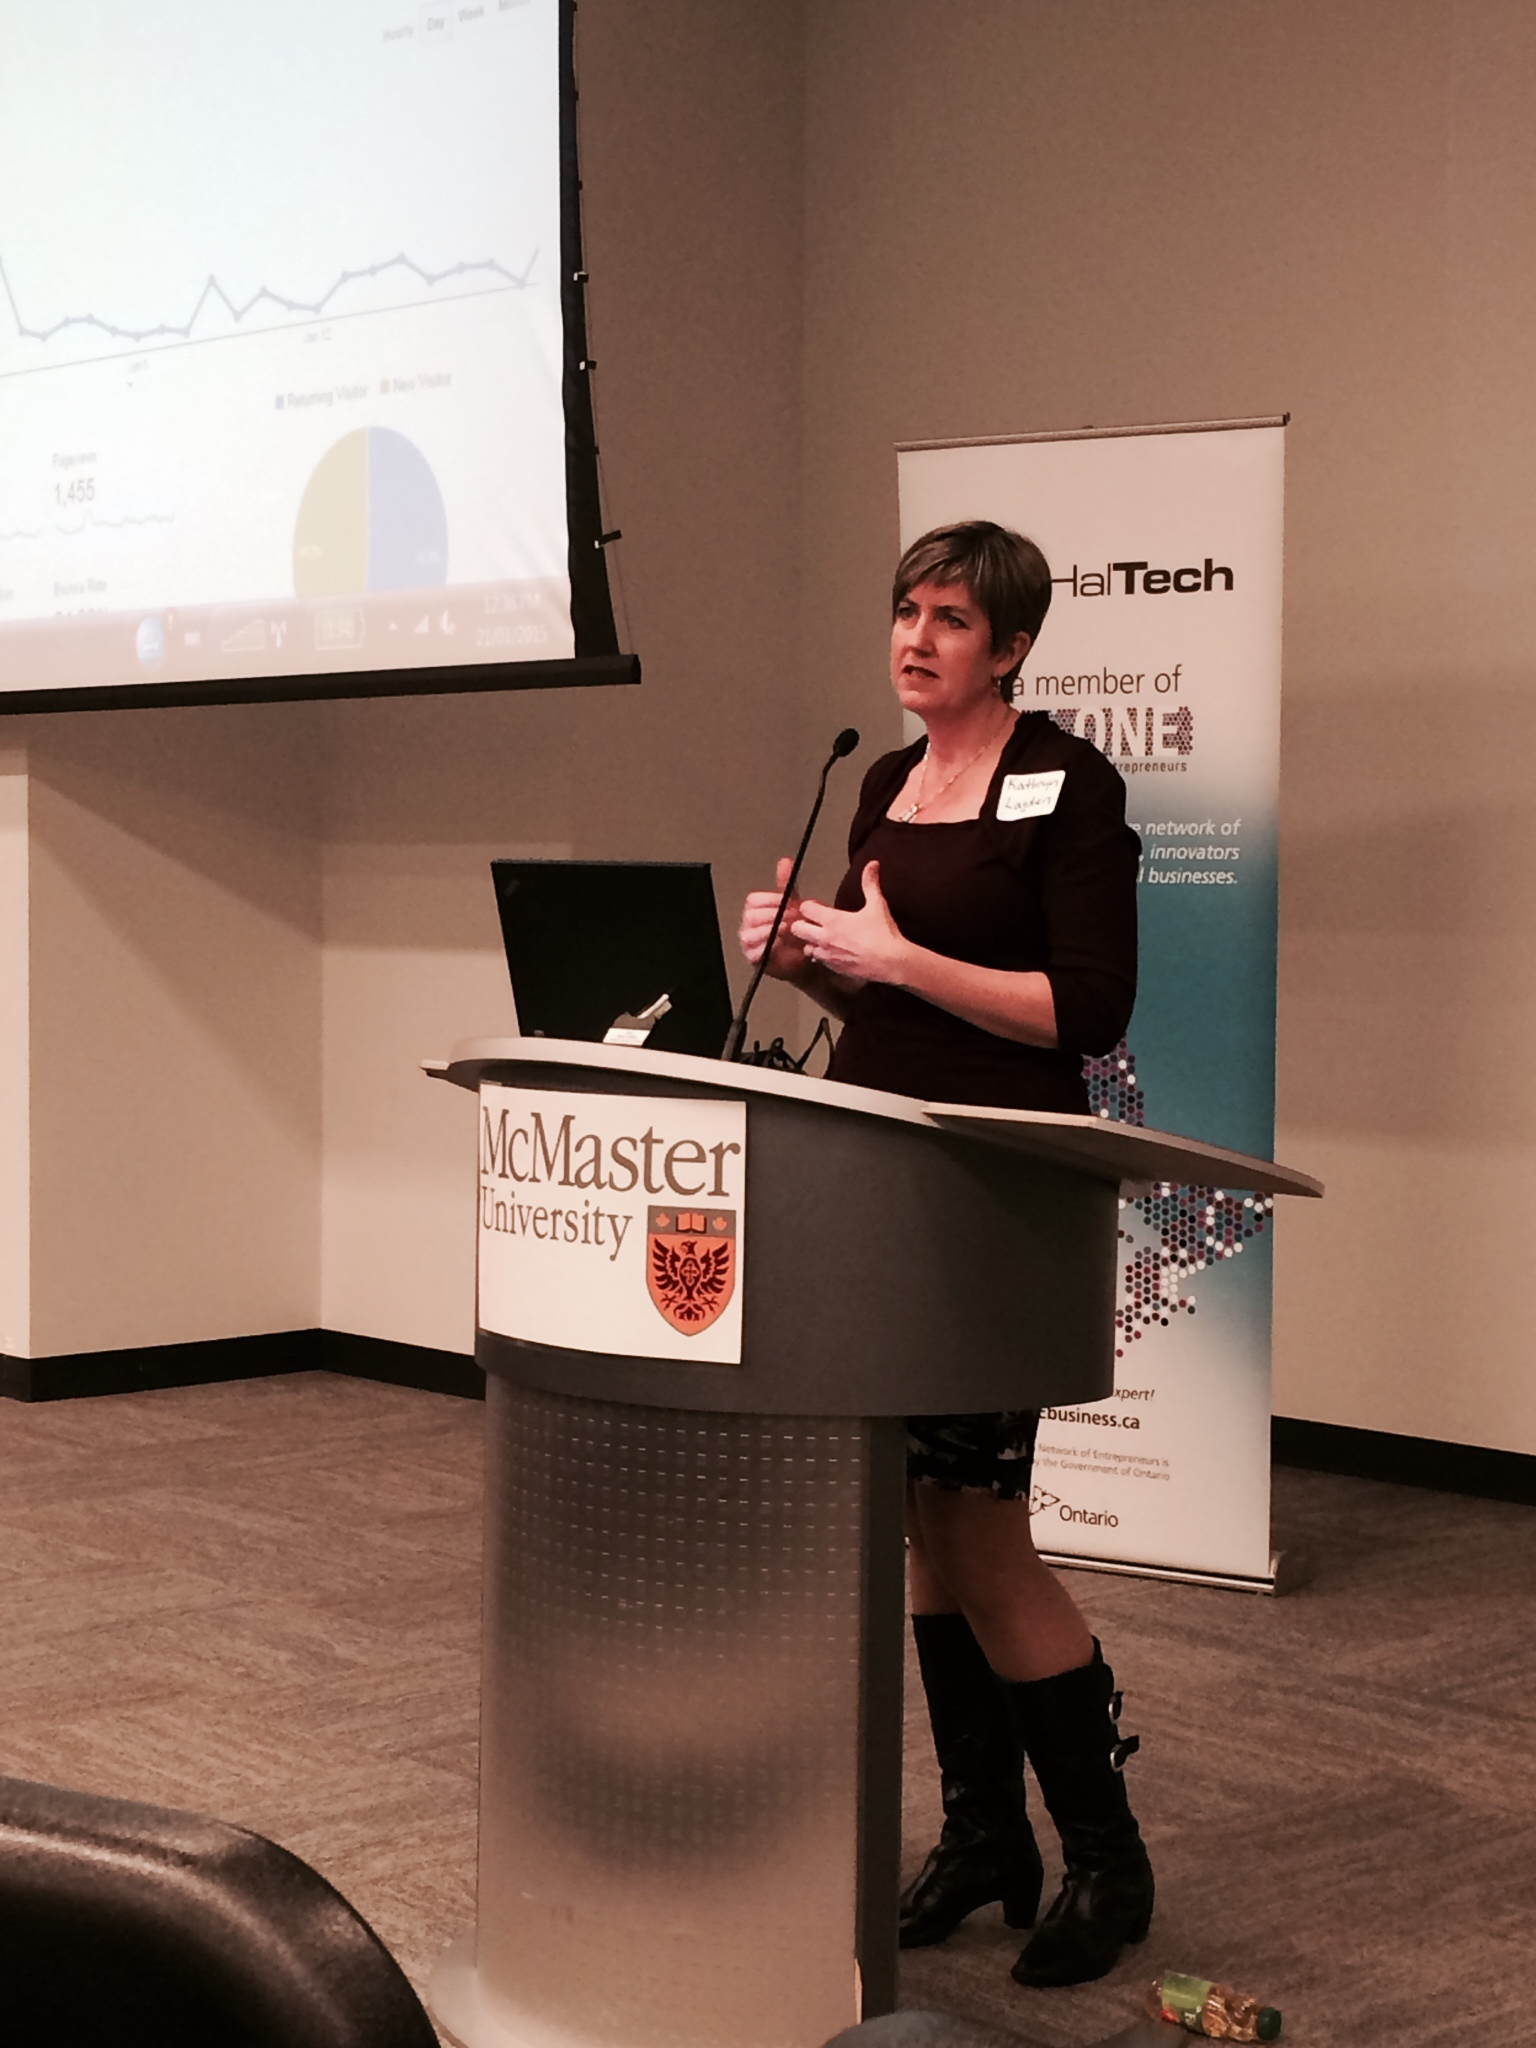 Kathryn Lagden talks about web analytics